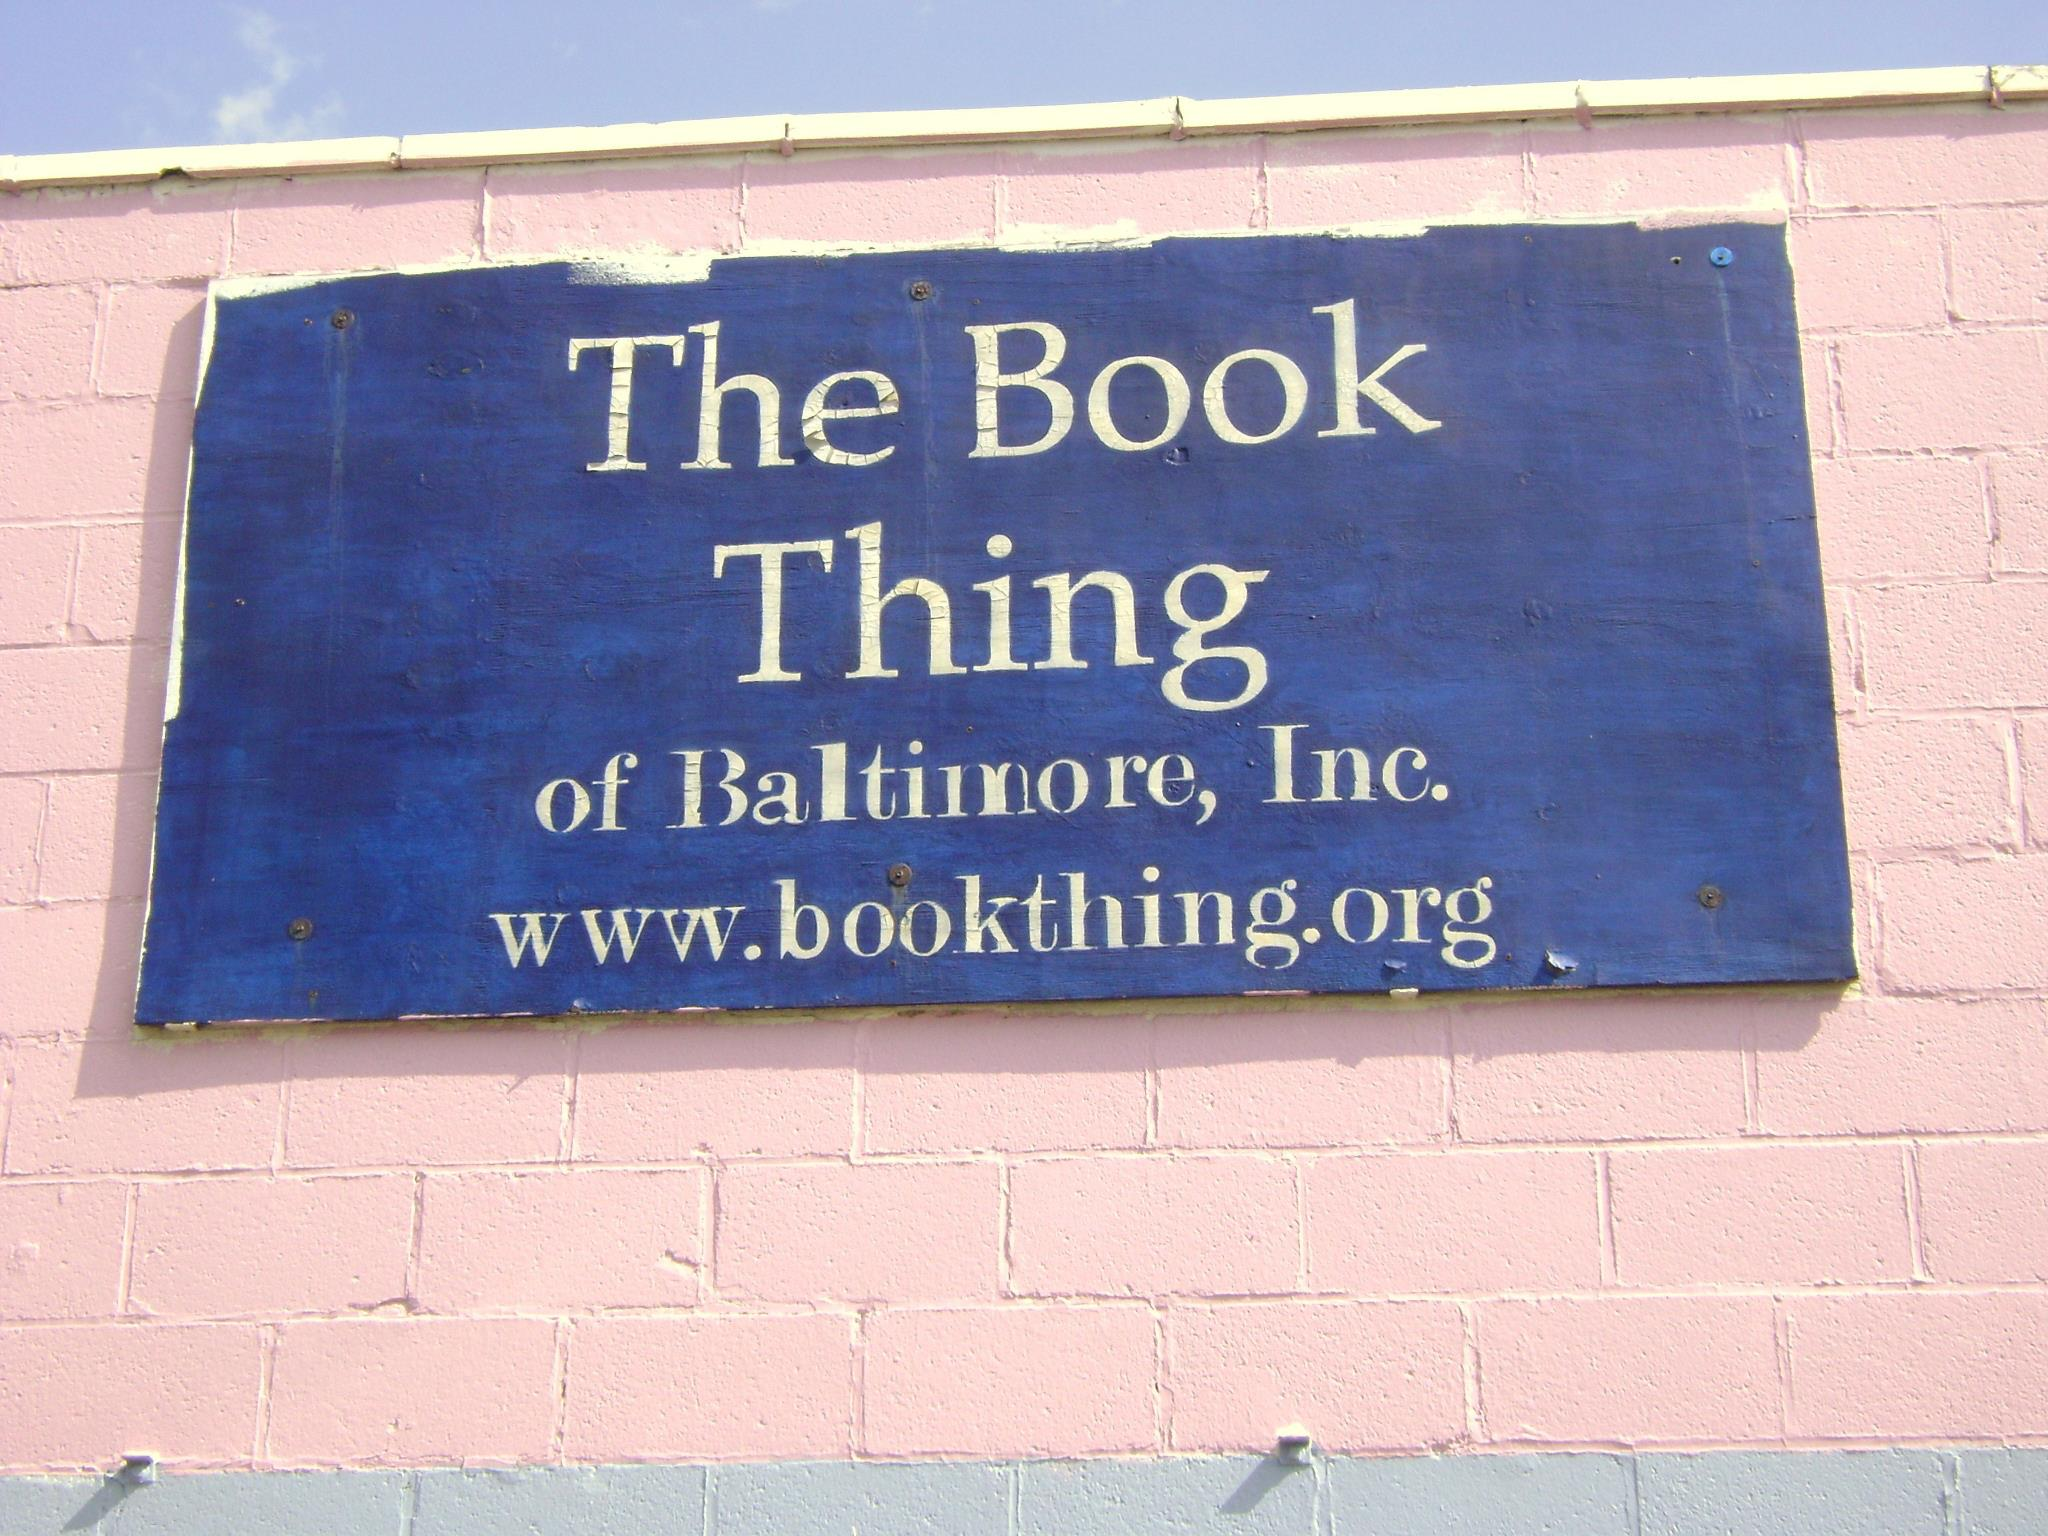 The Book Thing rebuilds, reopens, and will keep giving out free books